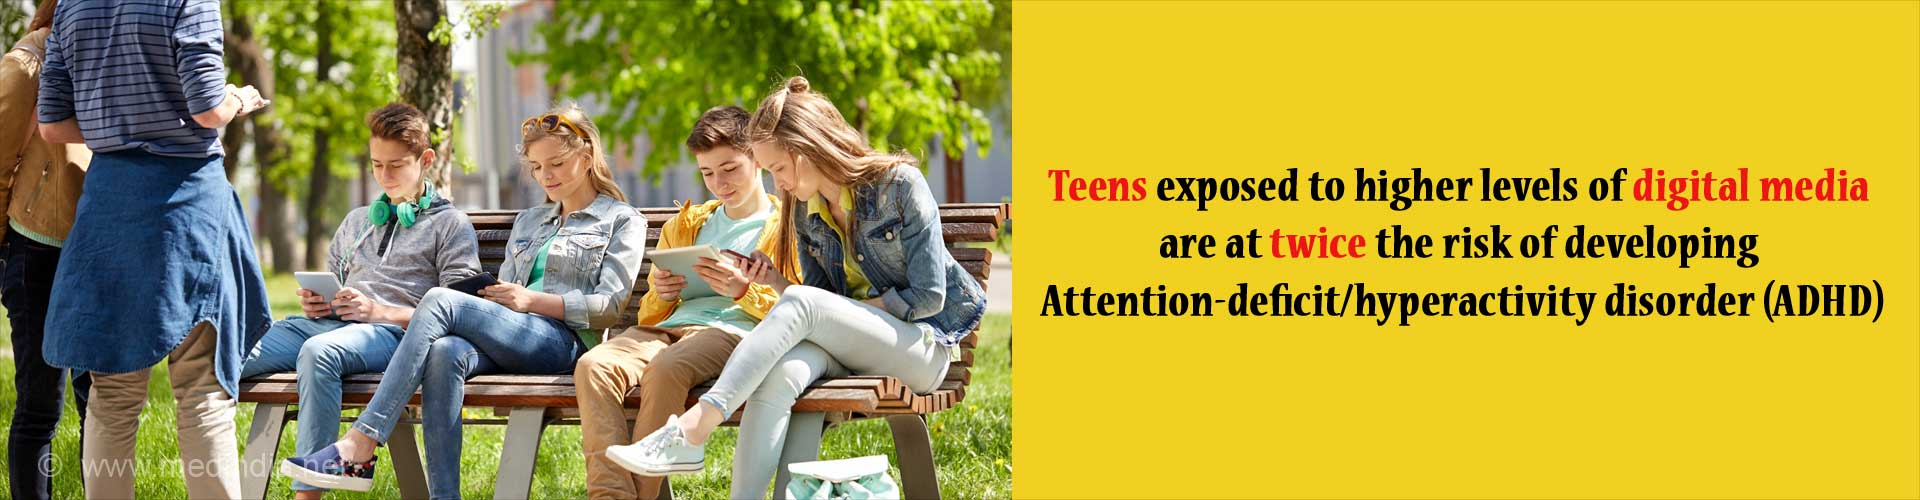 Heavy Use of Digital Media May Up Risk of ADHD in Teenagers